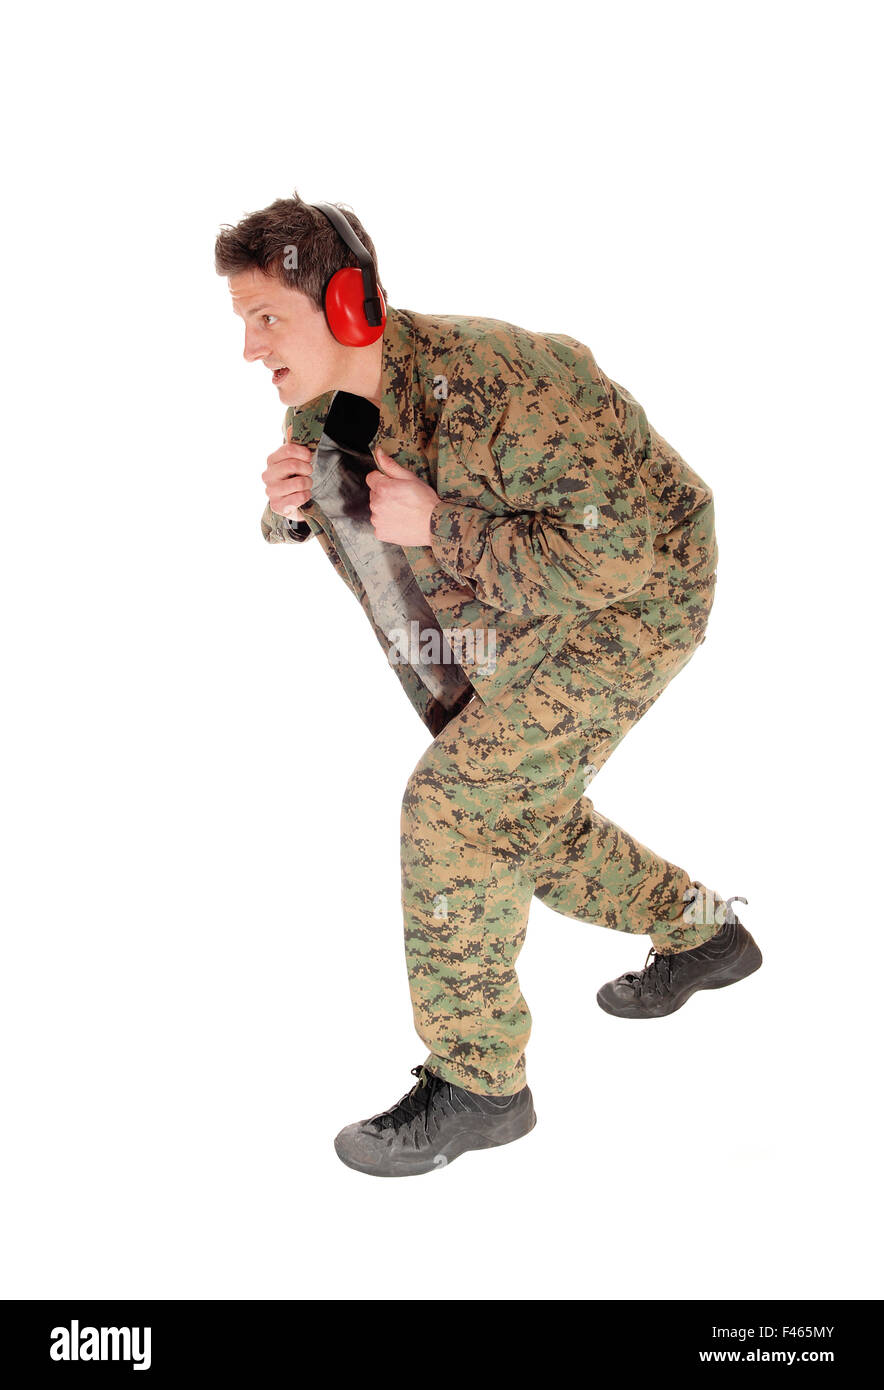 Soldier in camouflage uniform. - Stock Image